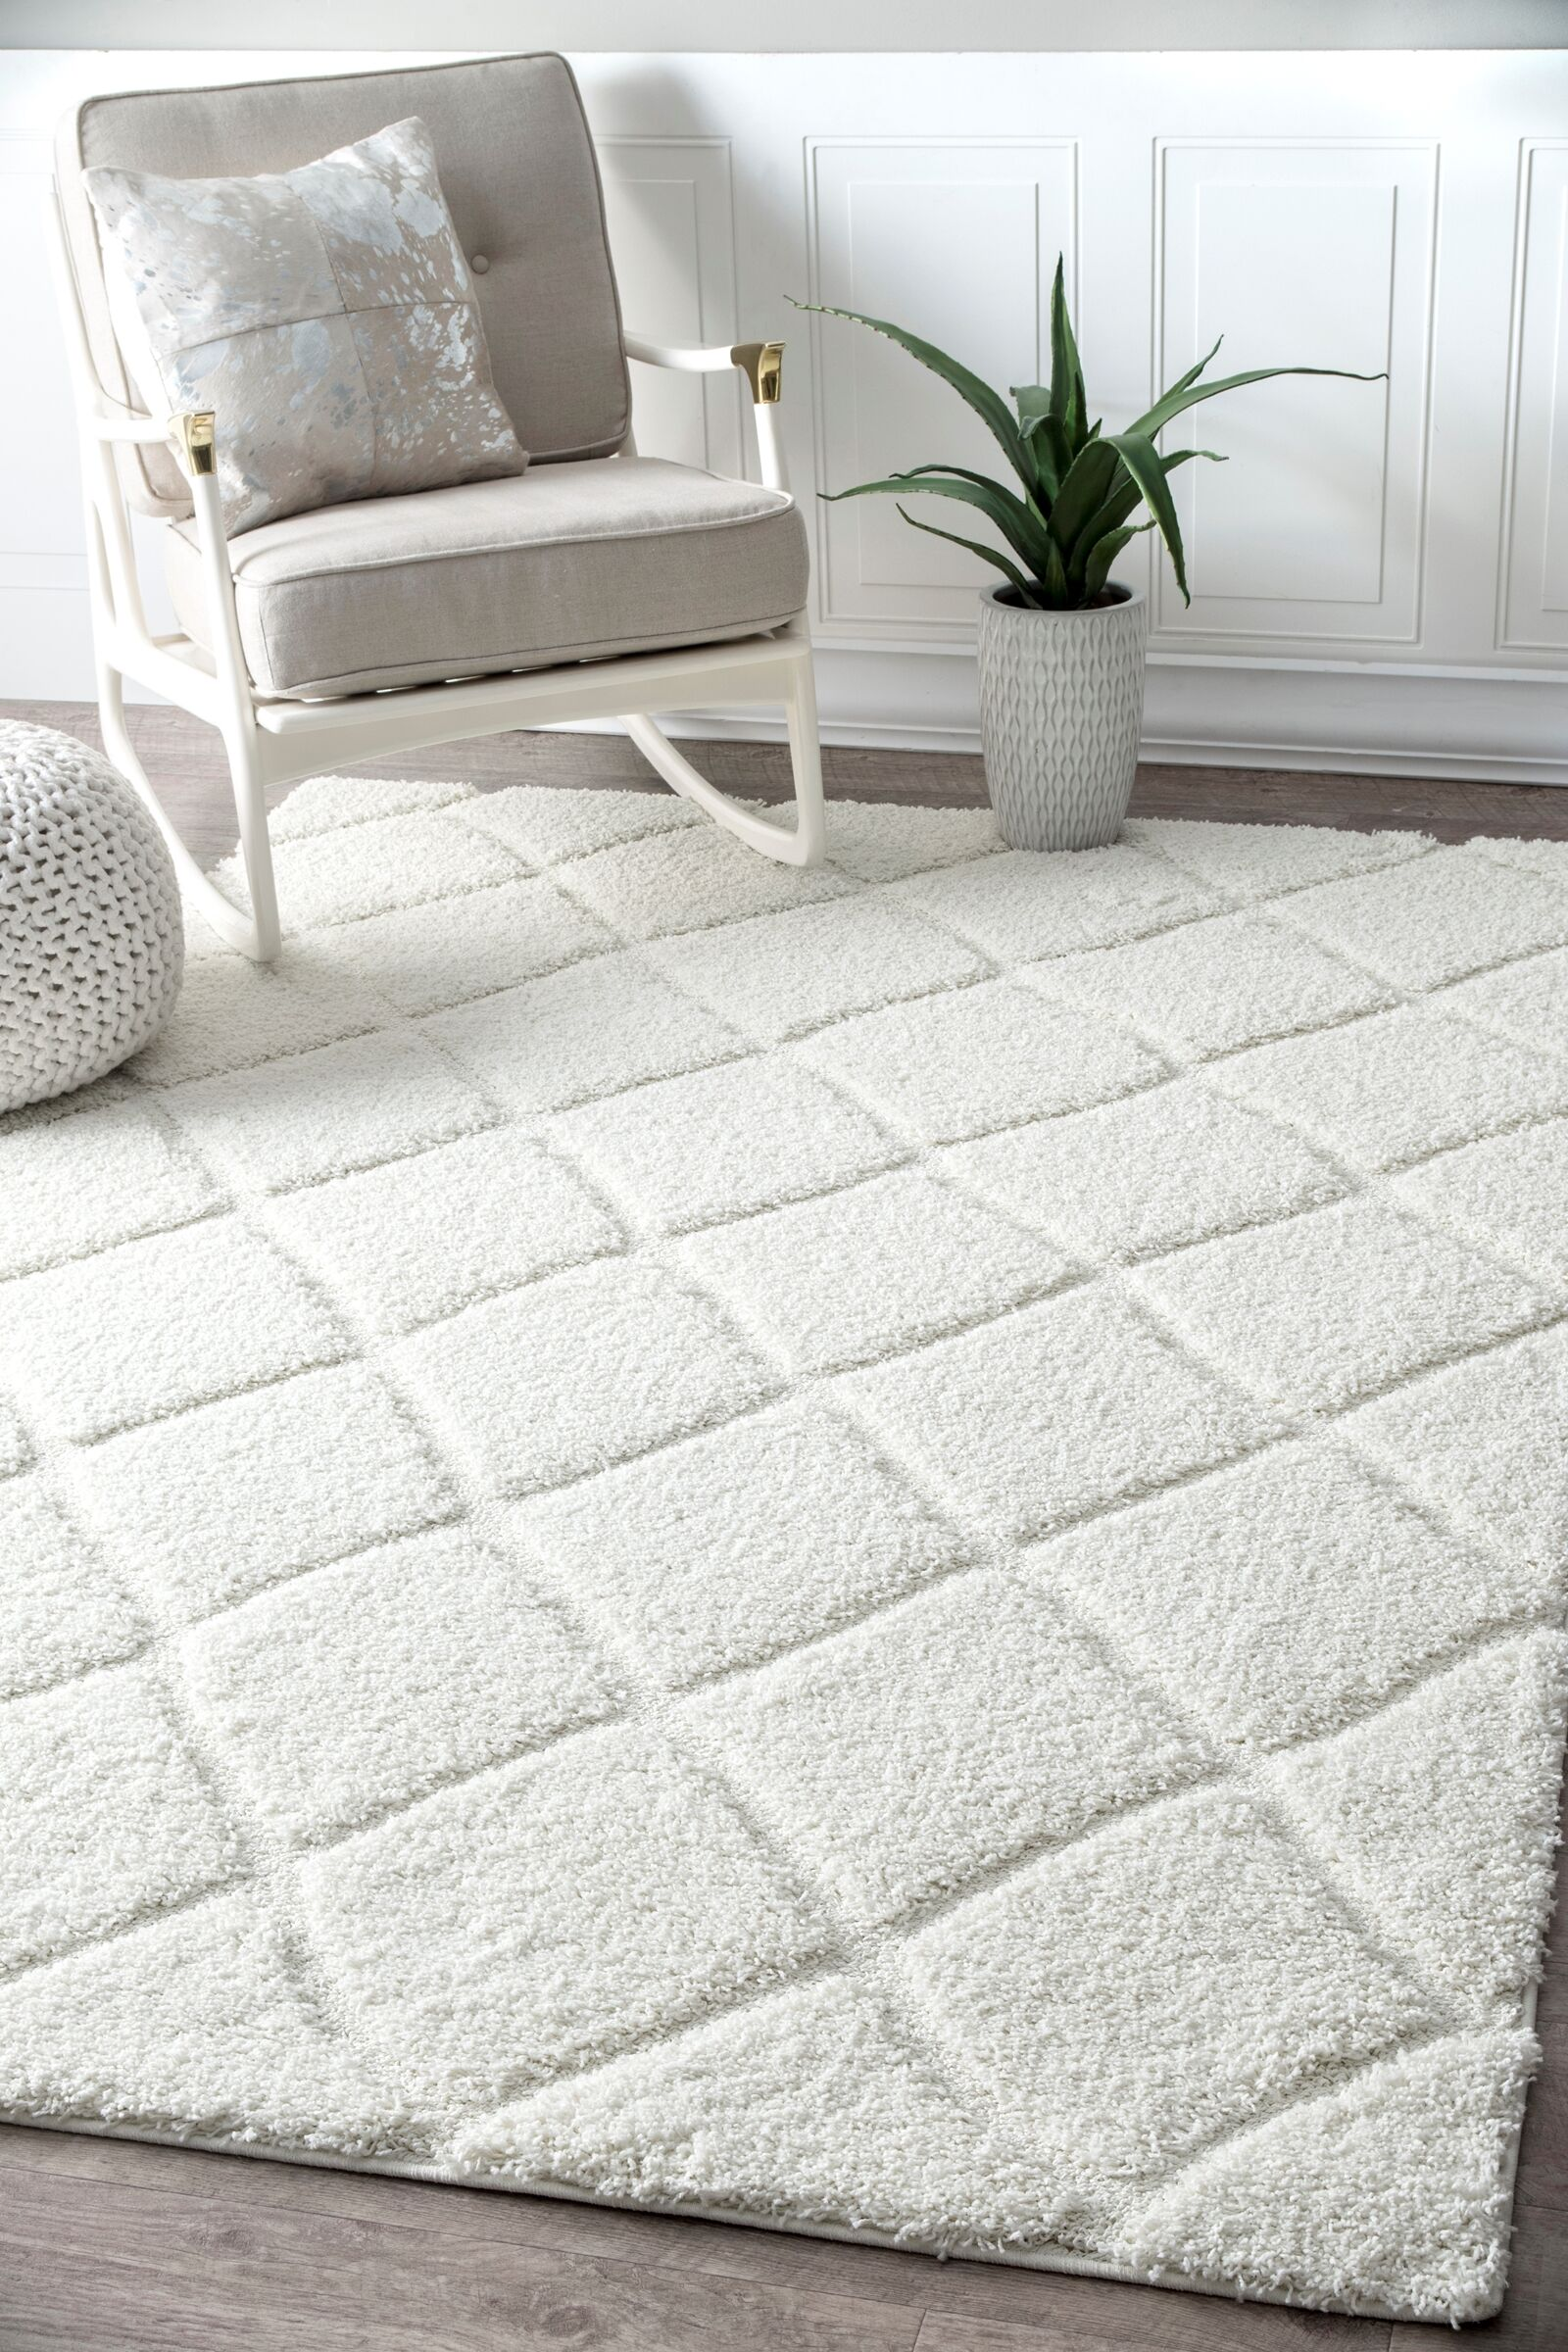 Hermione White Area Rug Rug Size: Rectangle 7'10